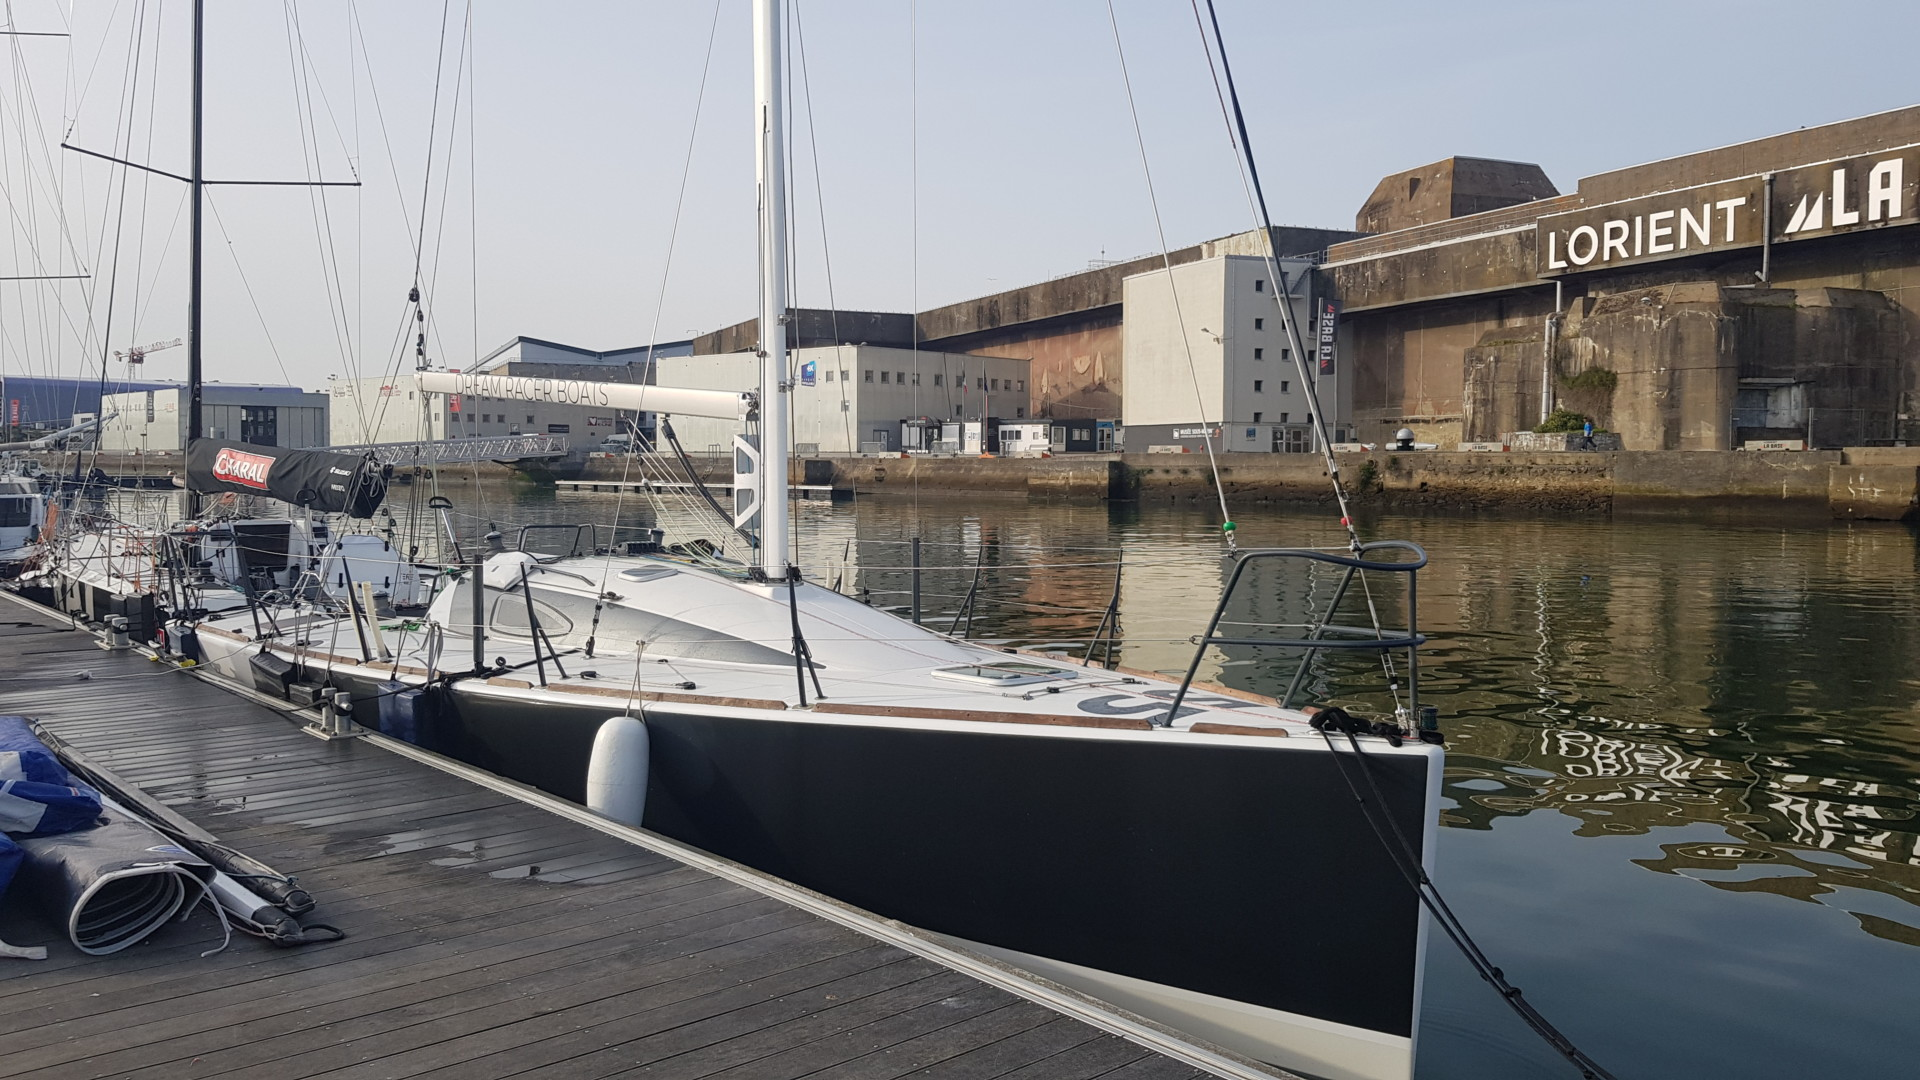 DREAM RACER BOATS Rent-Figaro-2 Dream Racer Boats : one of our achievement for rent News